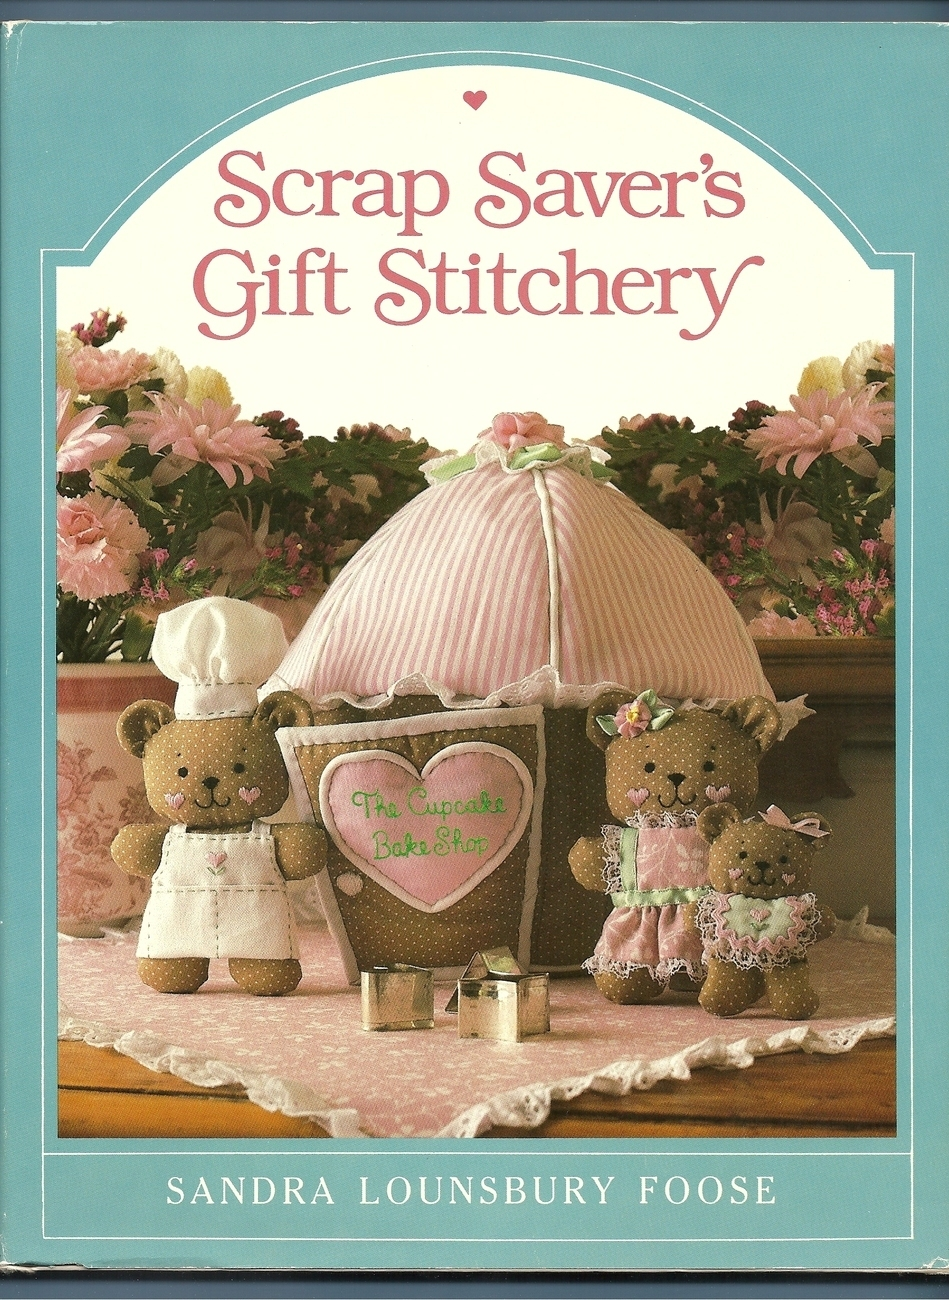 Scrap Saver's Gift Stichery Sewing Patterns Lounsbury Foose